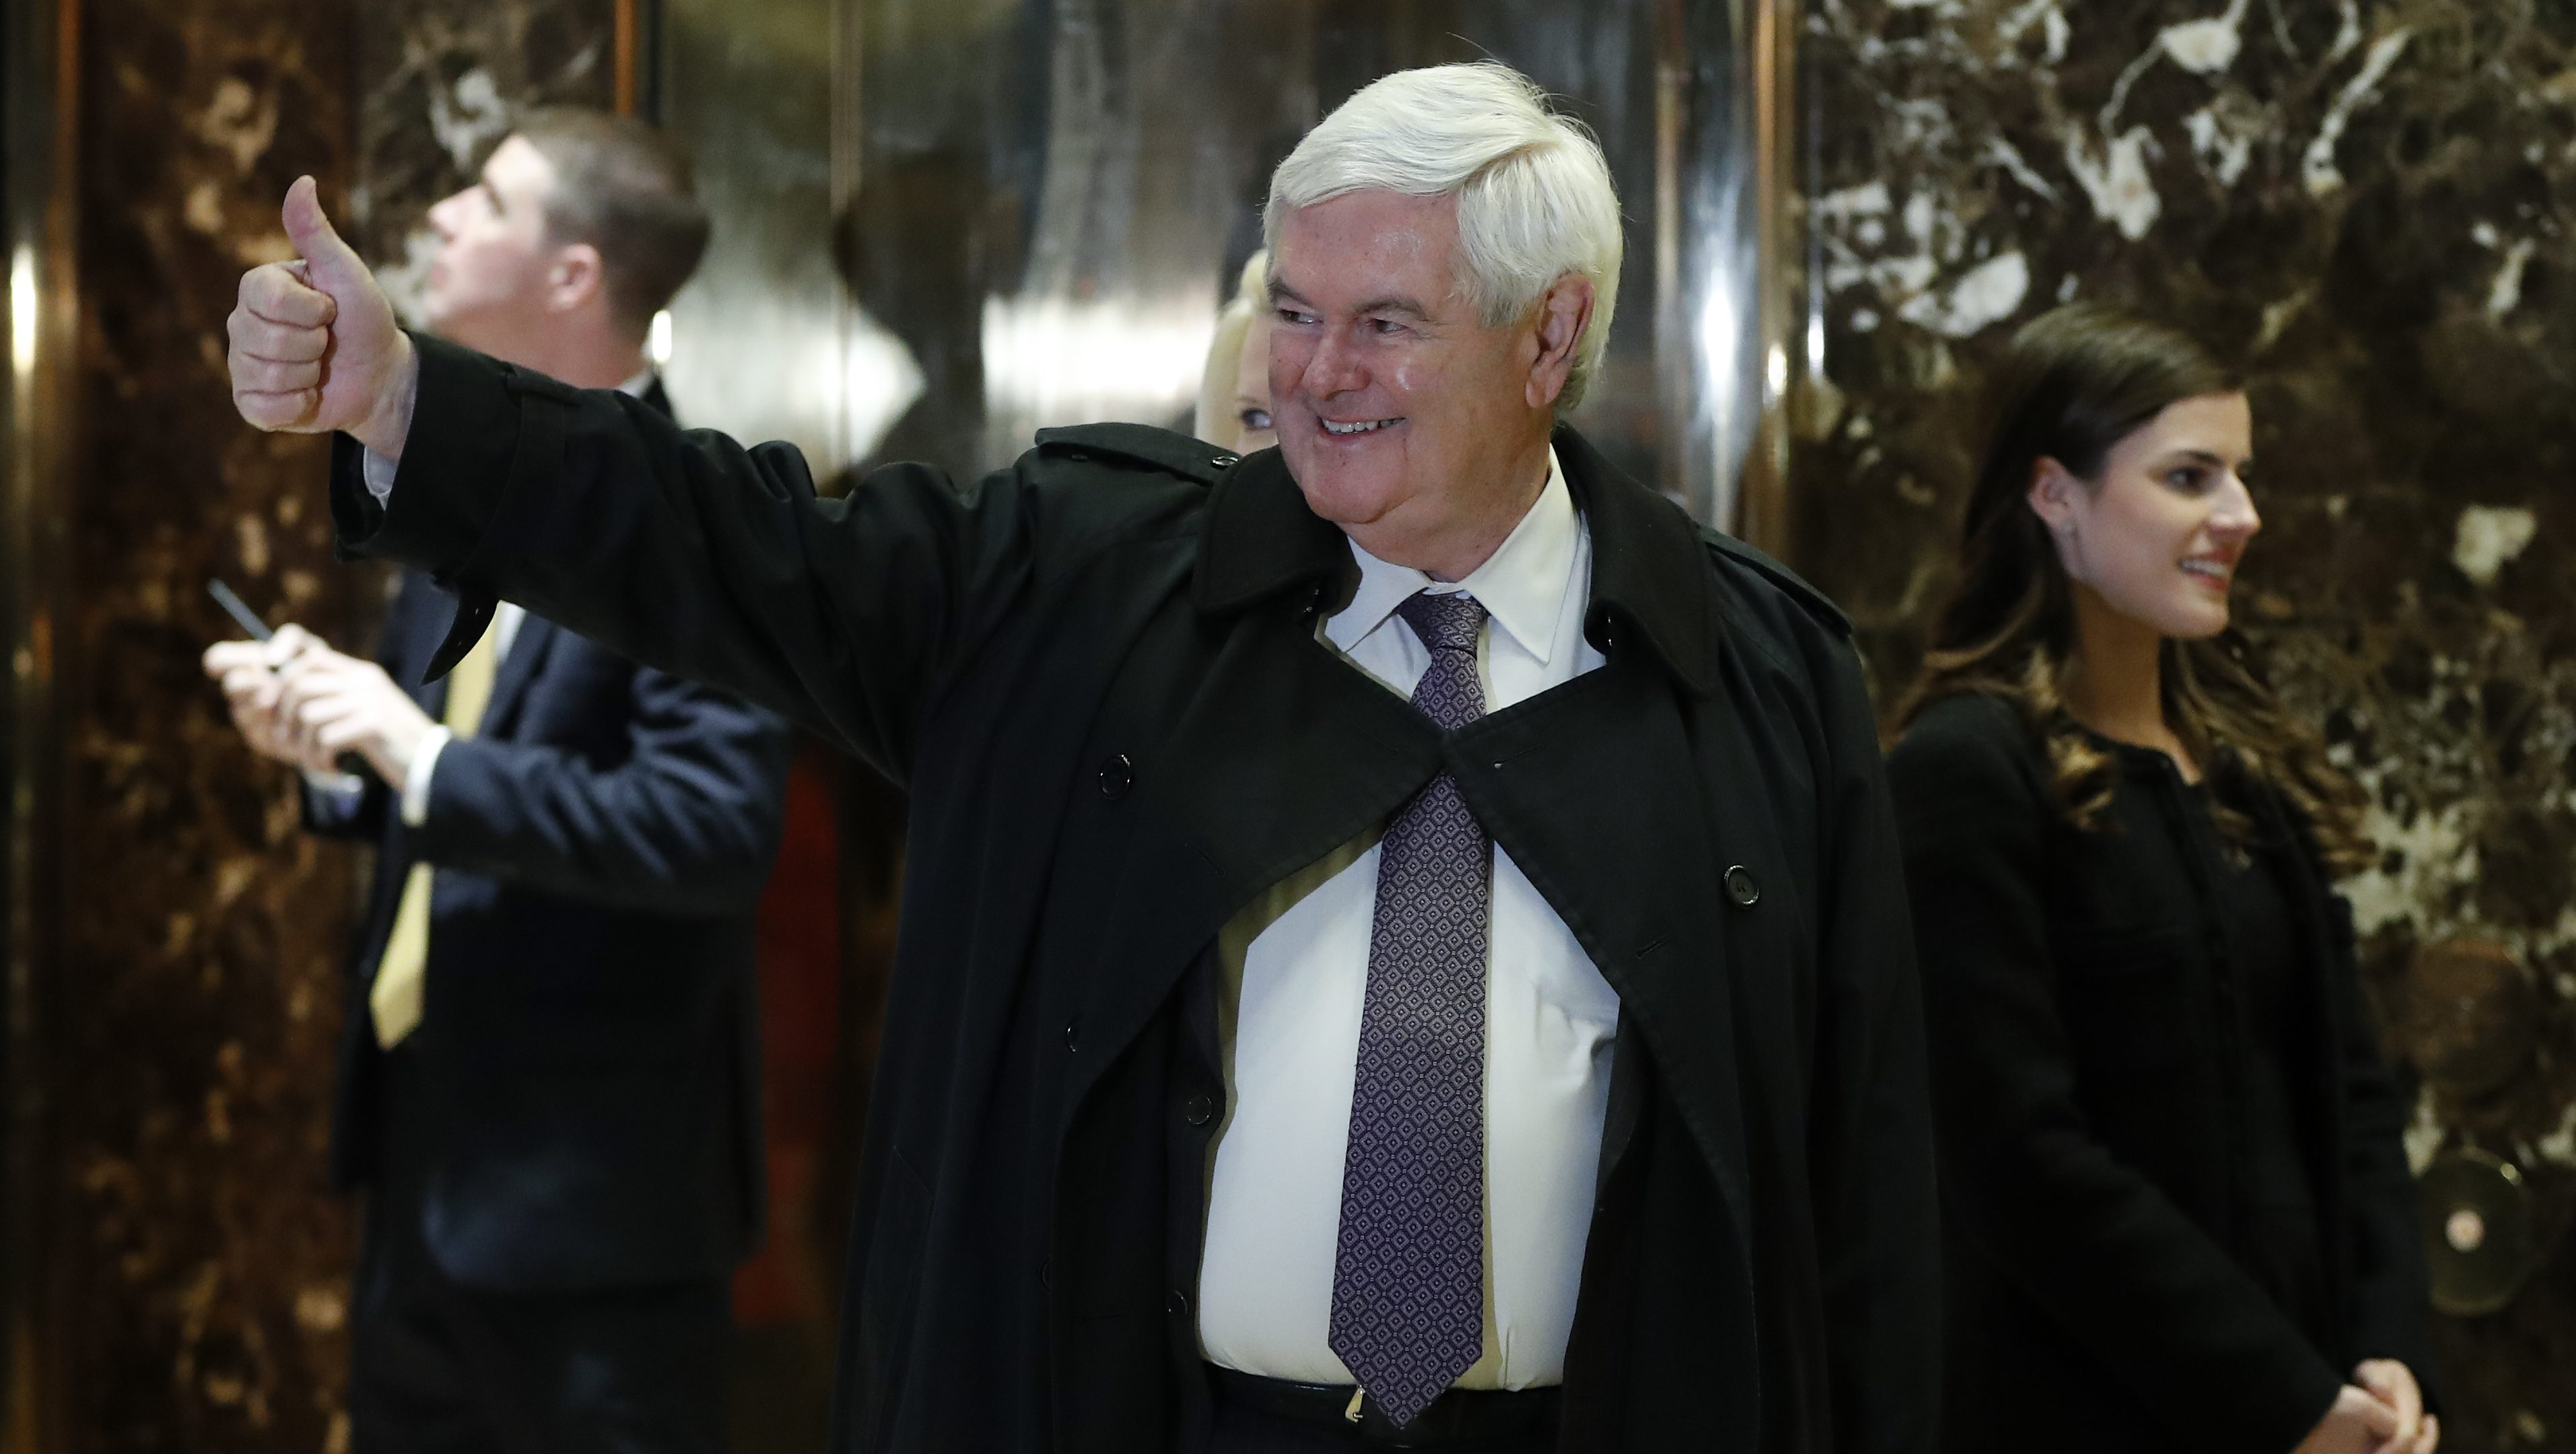 Former House Speaker Newt Gingrich gives the thumps-up as he arrives at Trump Tower, Monday, Nov. 21, 2016 in New York, to meet with President-elect Donald Trump. (AP Photo/Carolyn Kaster)